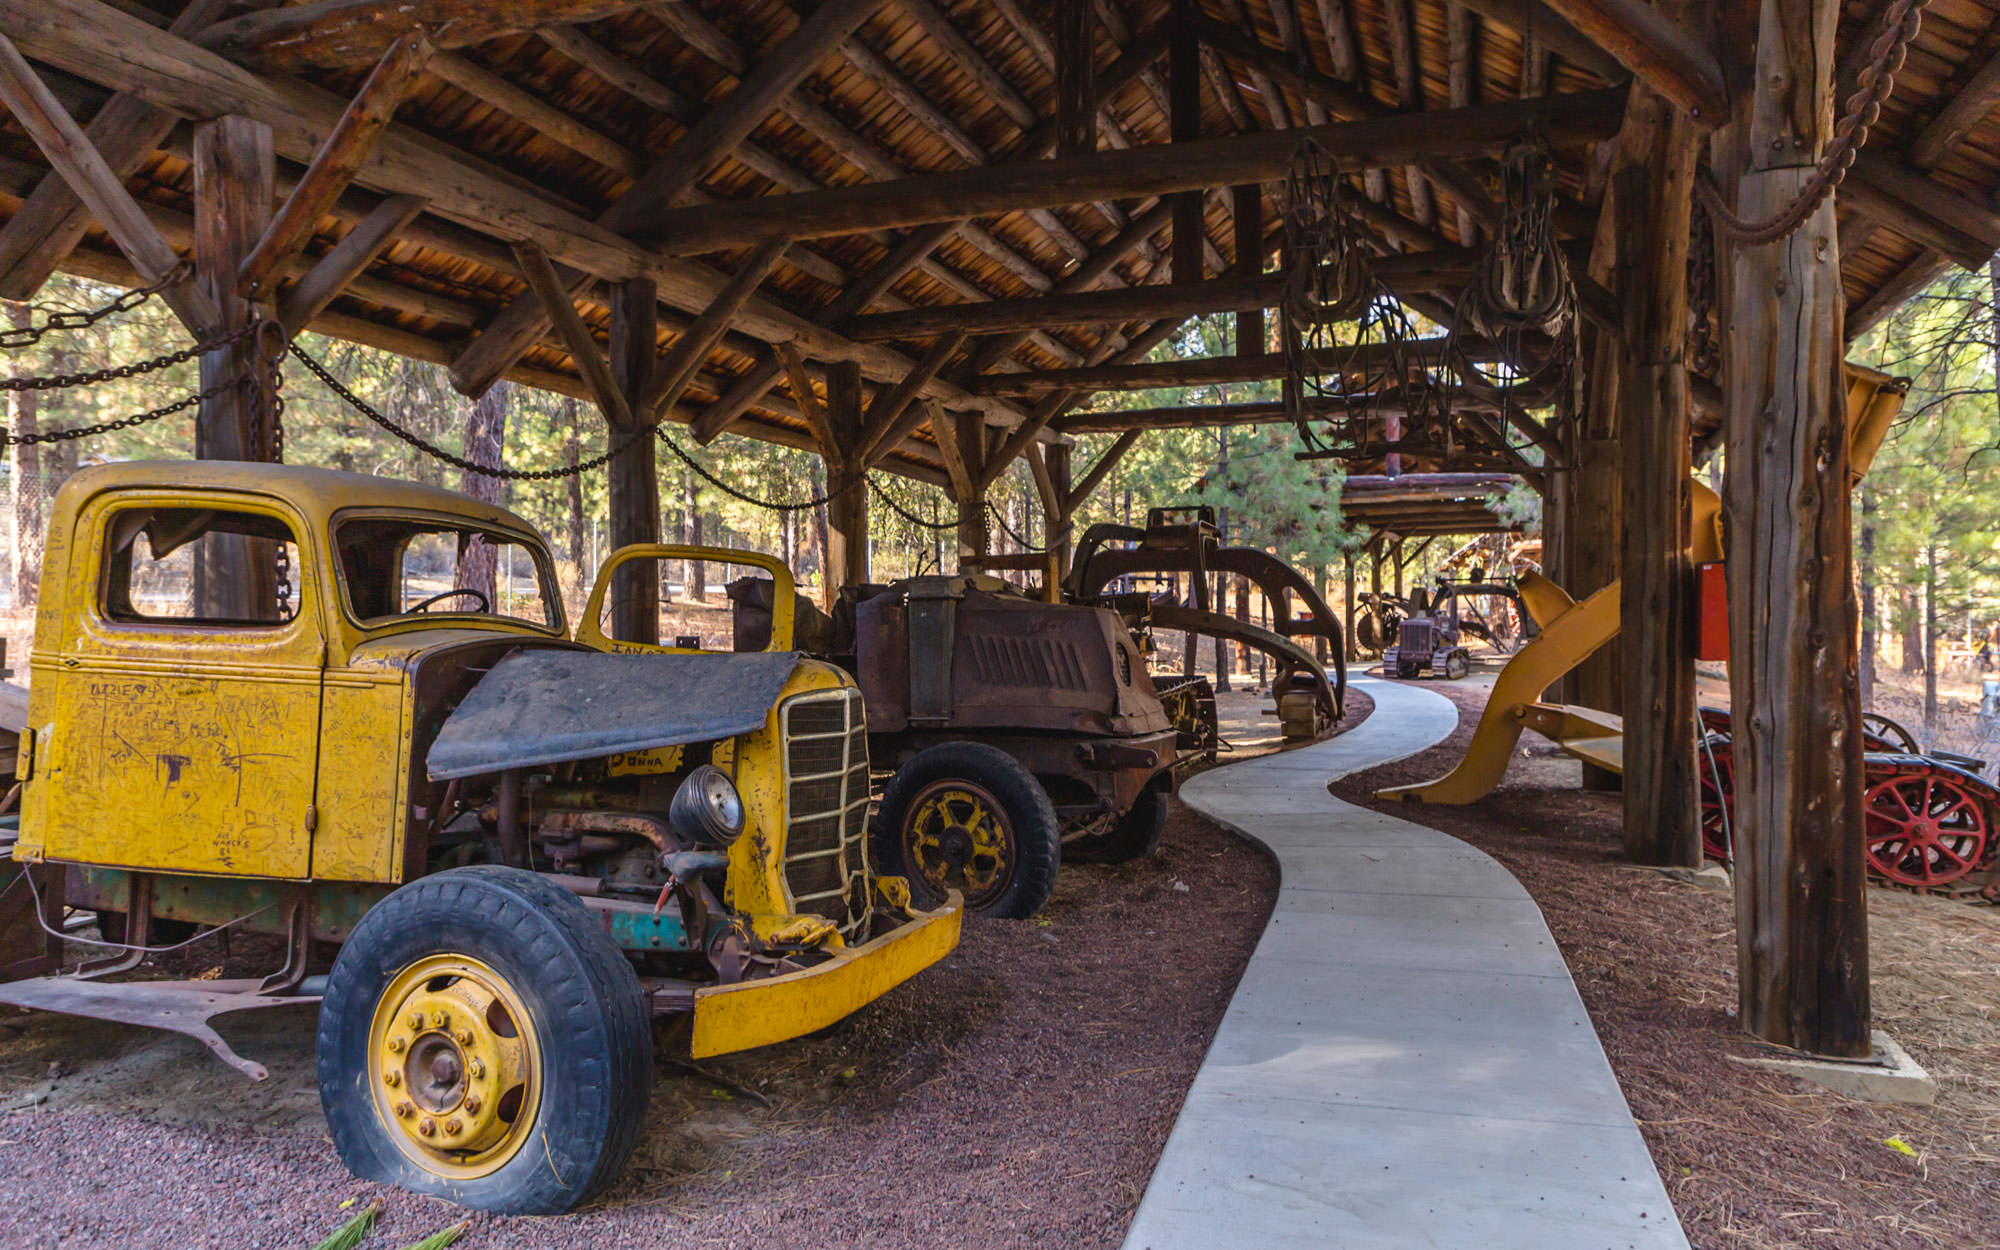 A paved path winds around antique logging machines.